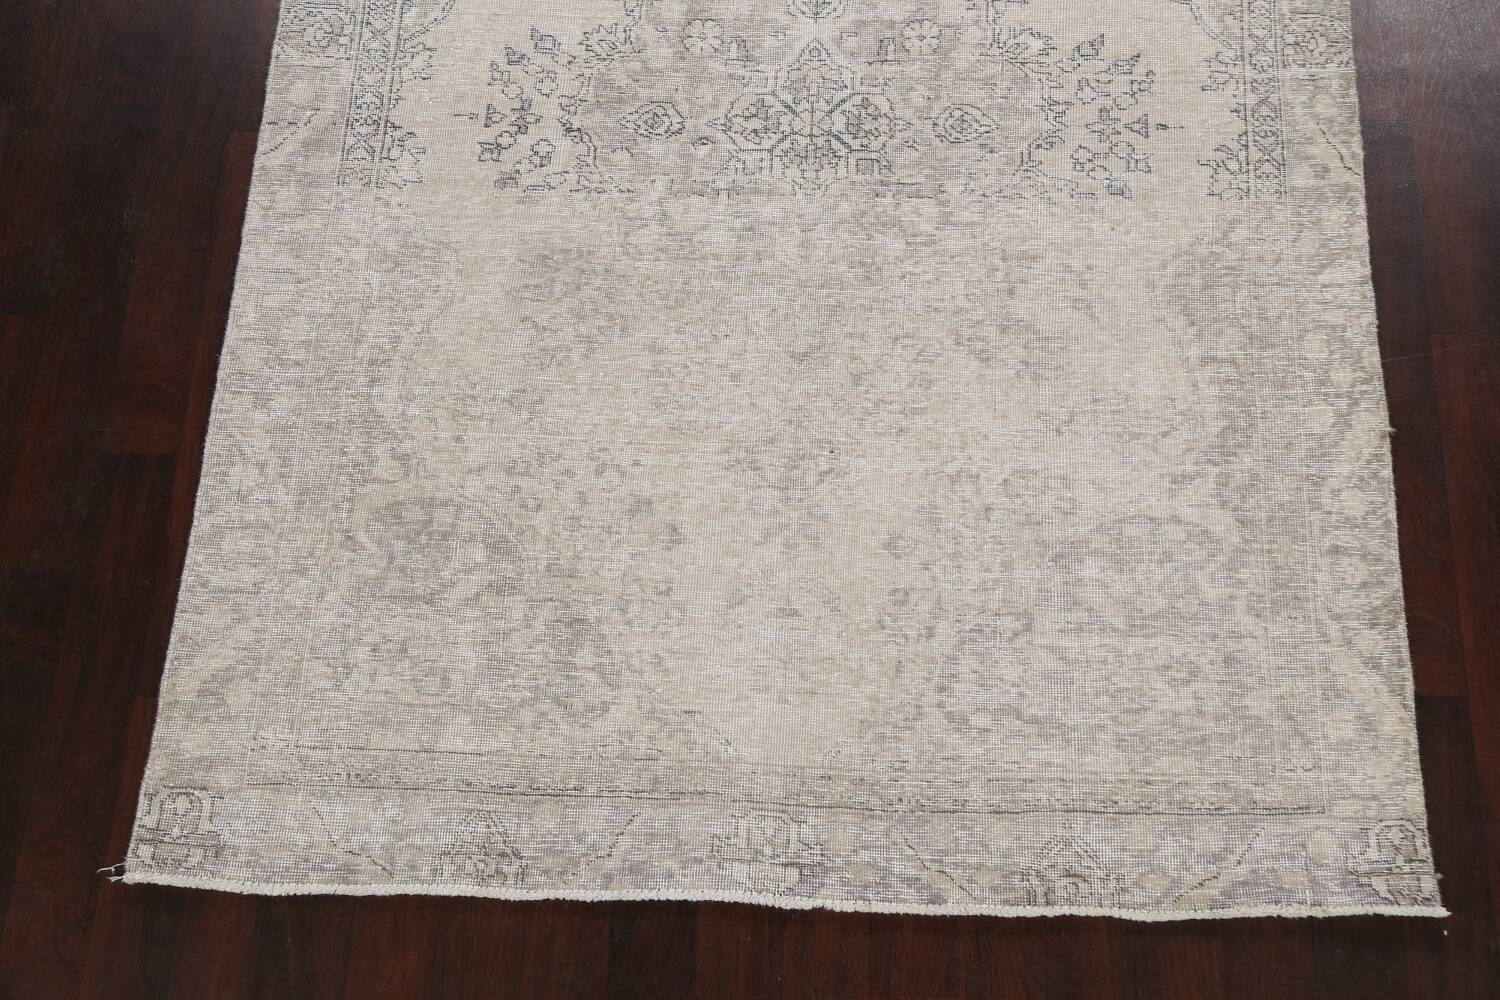 Muted Distressed Floral Tabriz Persian Area Rug 6x8 image 8